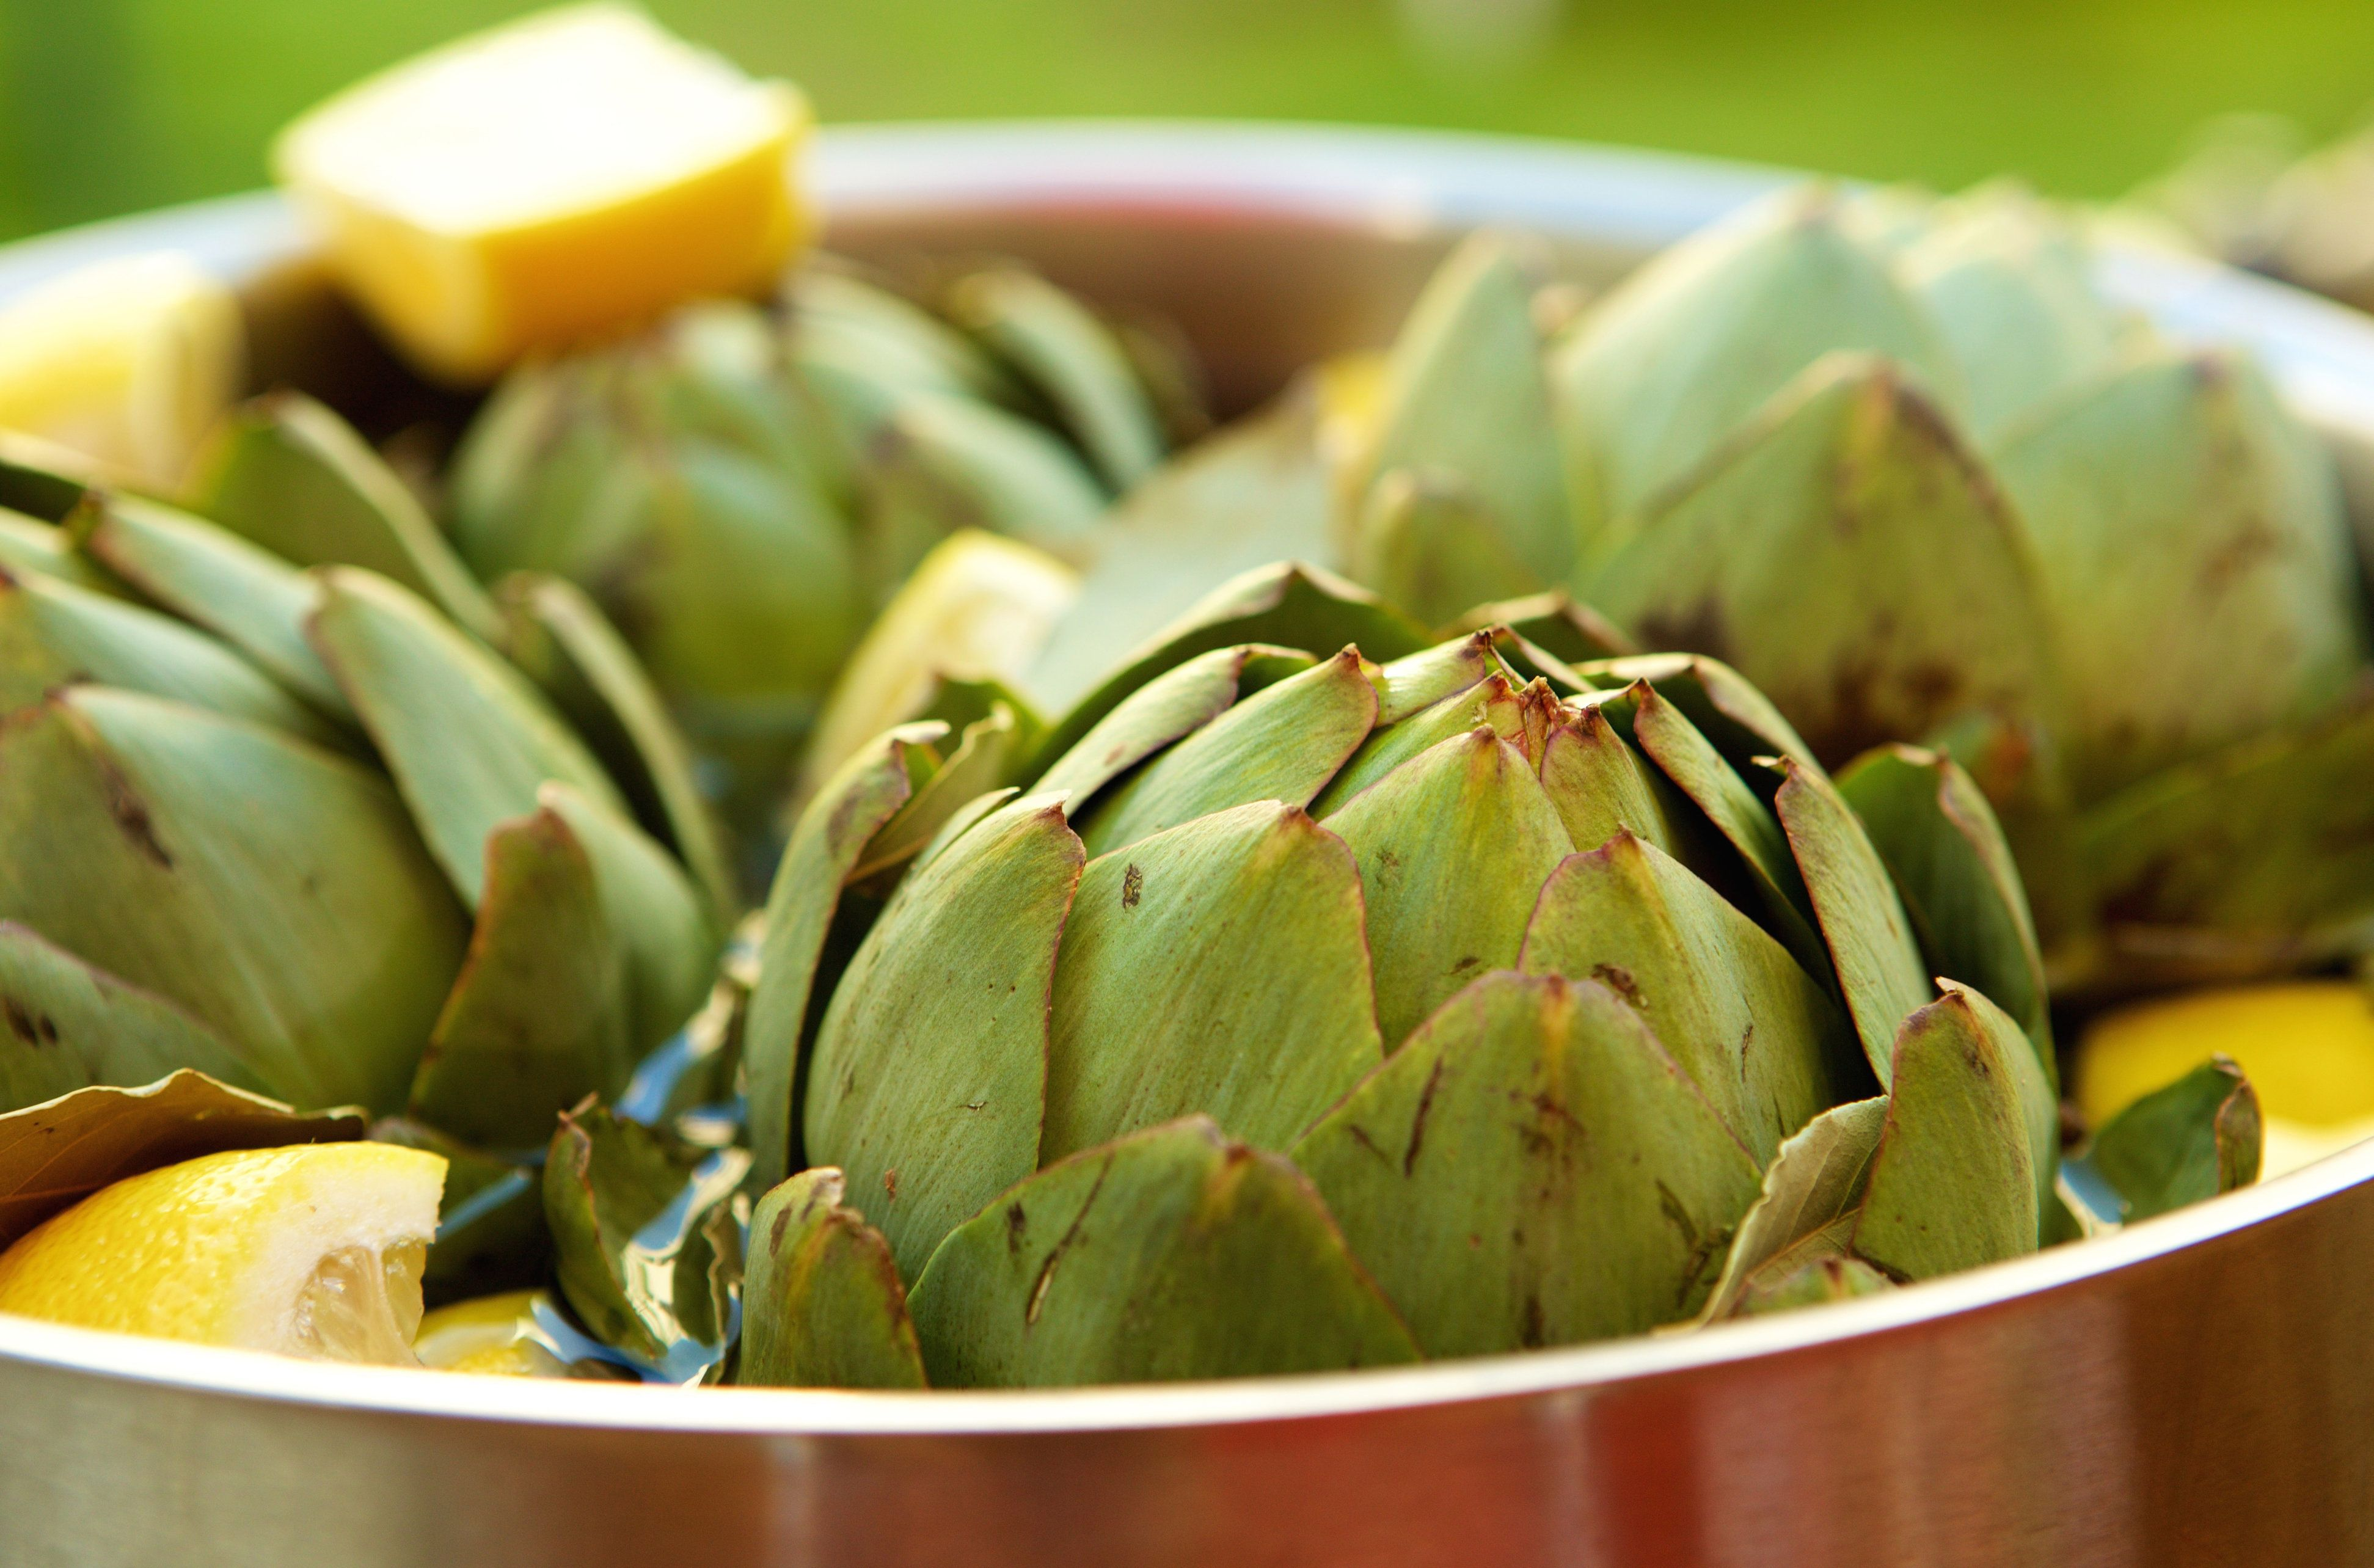 First, prepare your artichokes by trimming the stems and spiky points from the leaves. Then, pour a cup of water into your ri